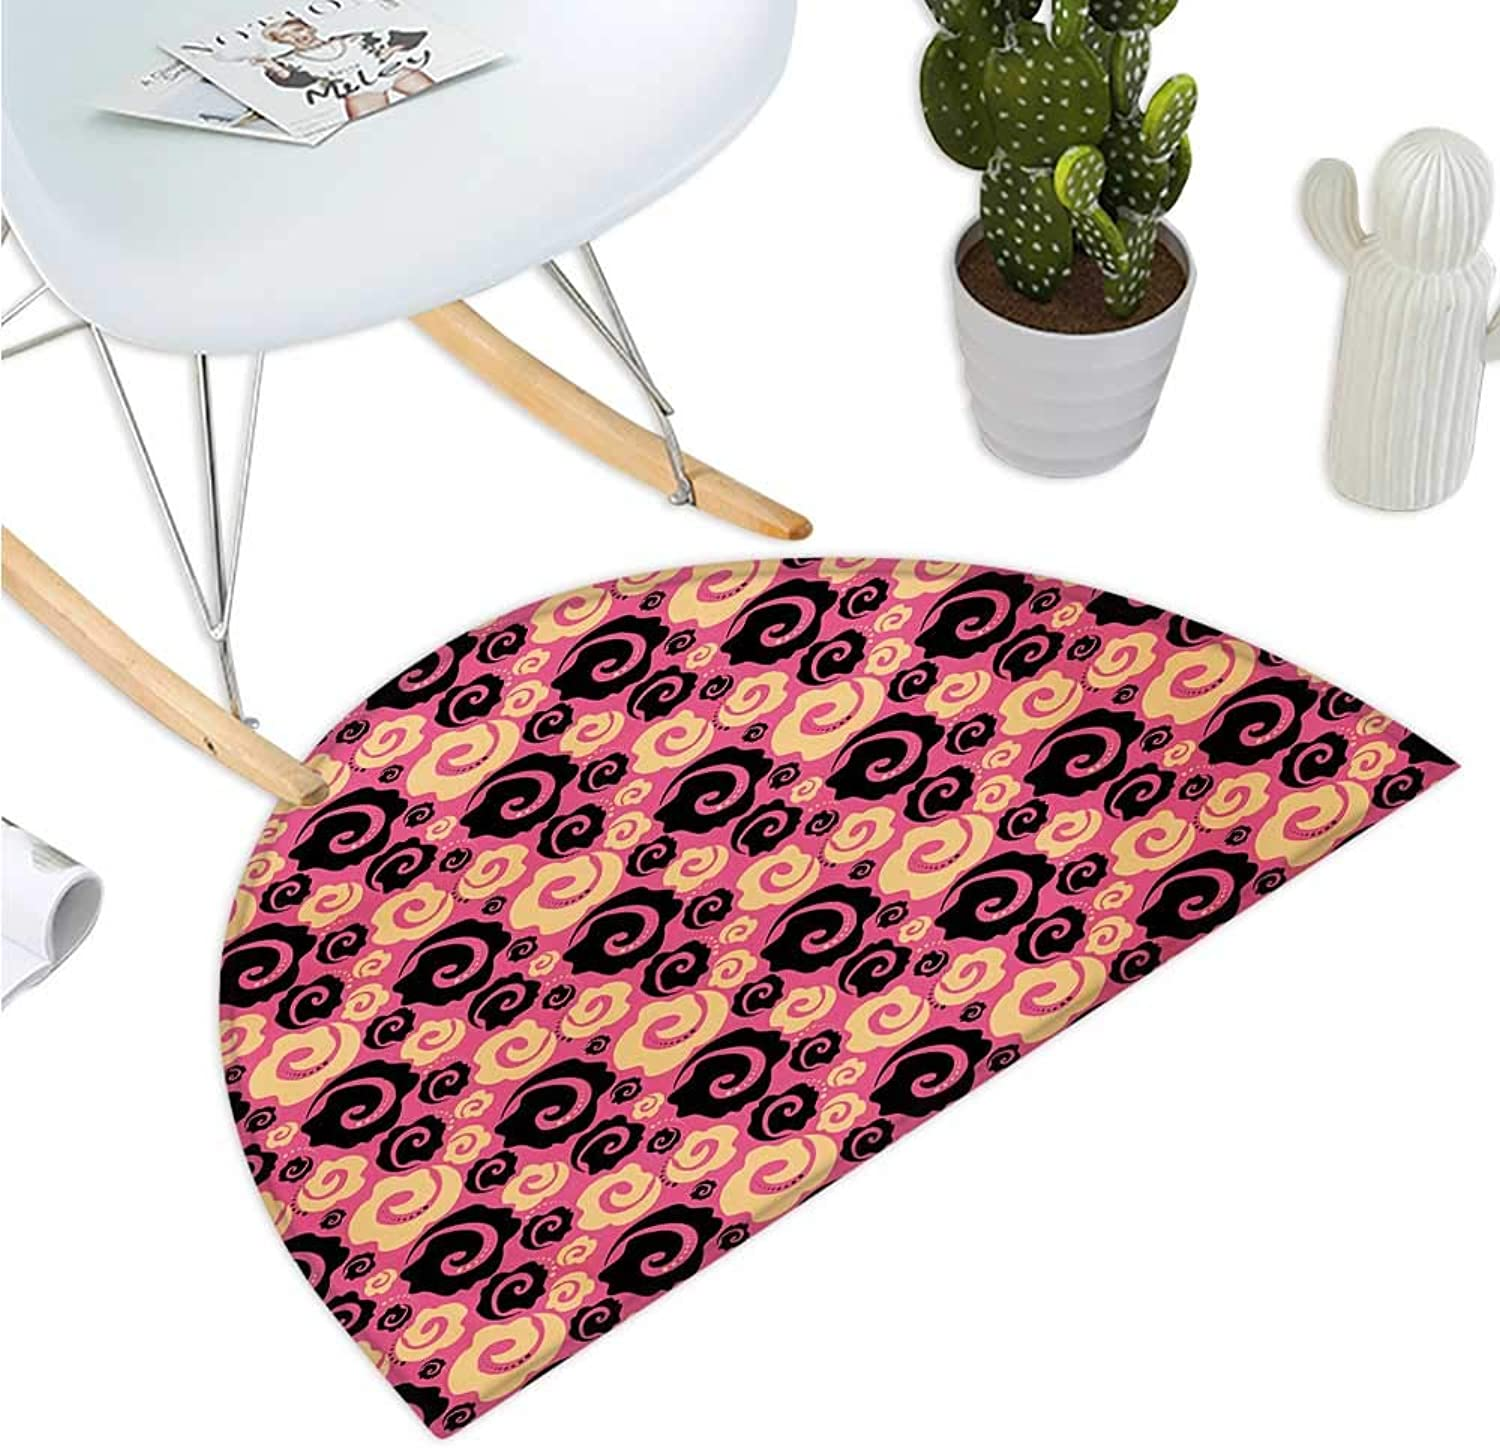 Floral Semicircle Doormat Vibrant Vintage Pink with Flowers pinks Stylish Fashion Inspired Blooms Halfmoon doormats H 39.3  xD 59  Pale orange Pink Black